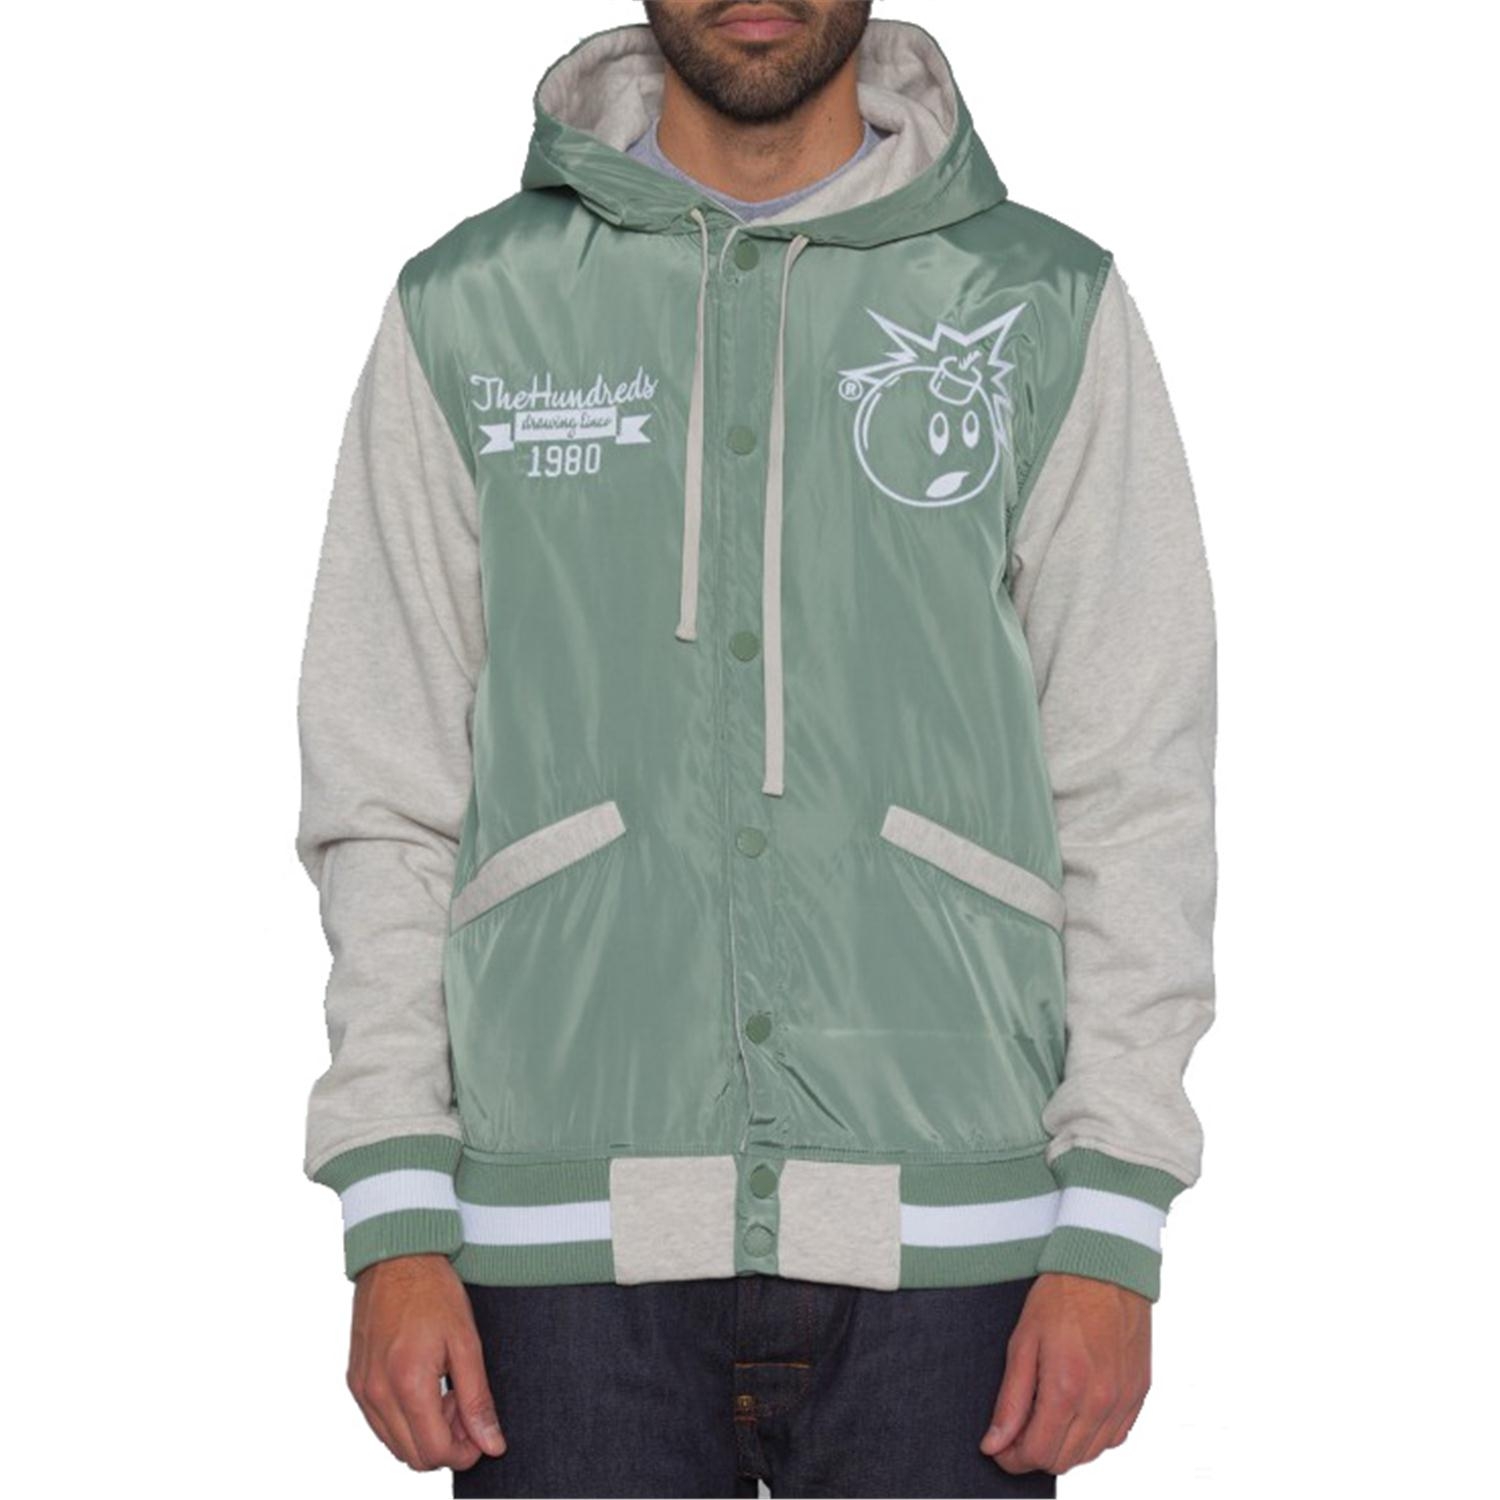 Find great deals on eBay for the hundreds jackets. Shop with confidence. Skip to main content. eBay: The Hundreds Reloaded Varsity Jacket (Small) Pre-Owned. $ or Best Offer. Free Shipping. THE HUNDREDS x DEATH ROW RECORDS Blue Denim Jacket sz .